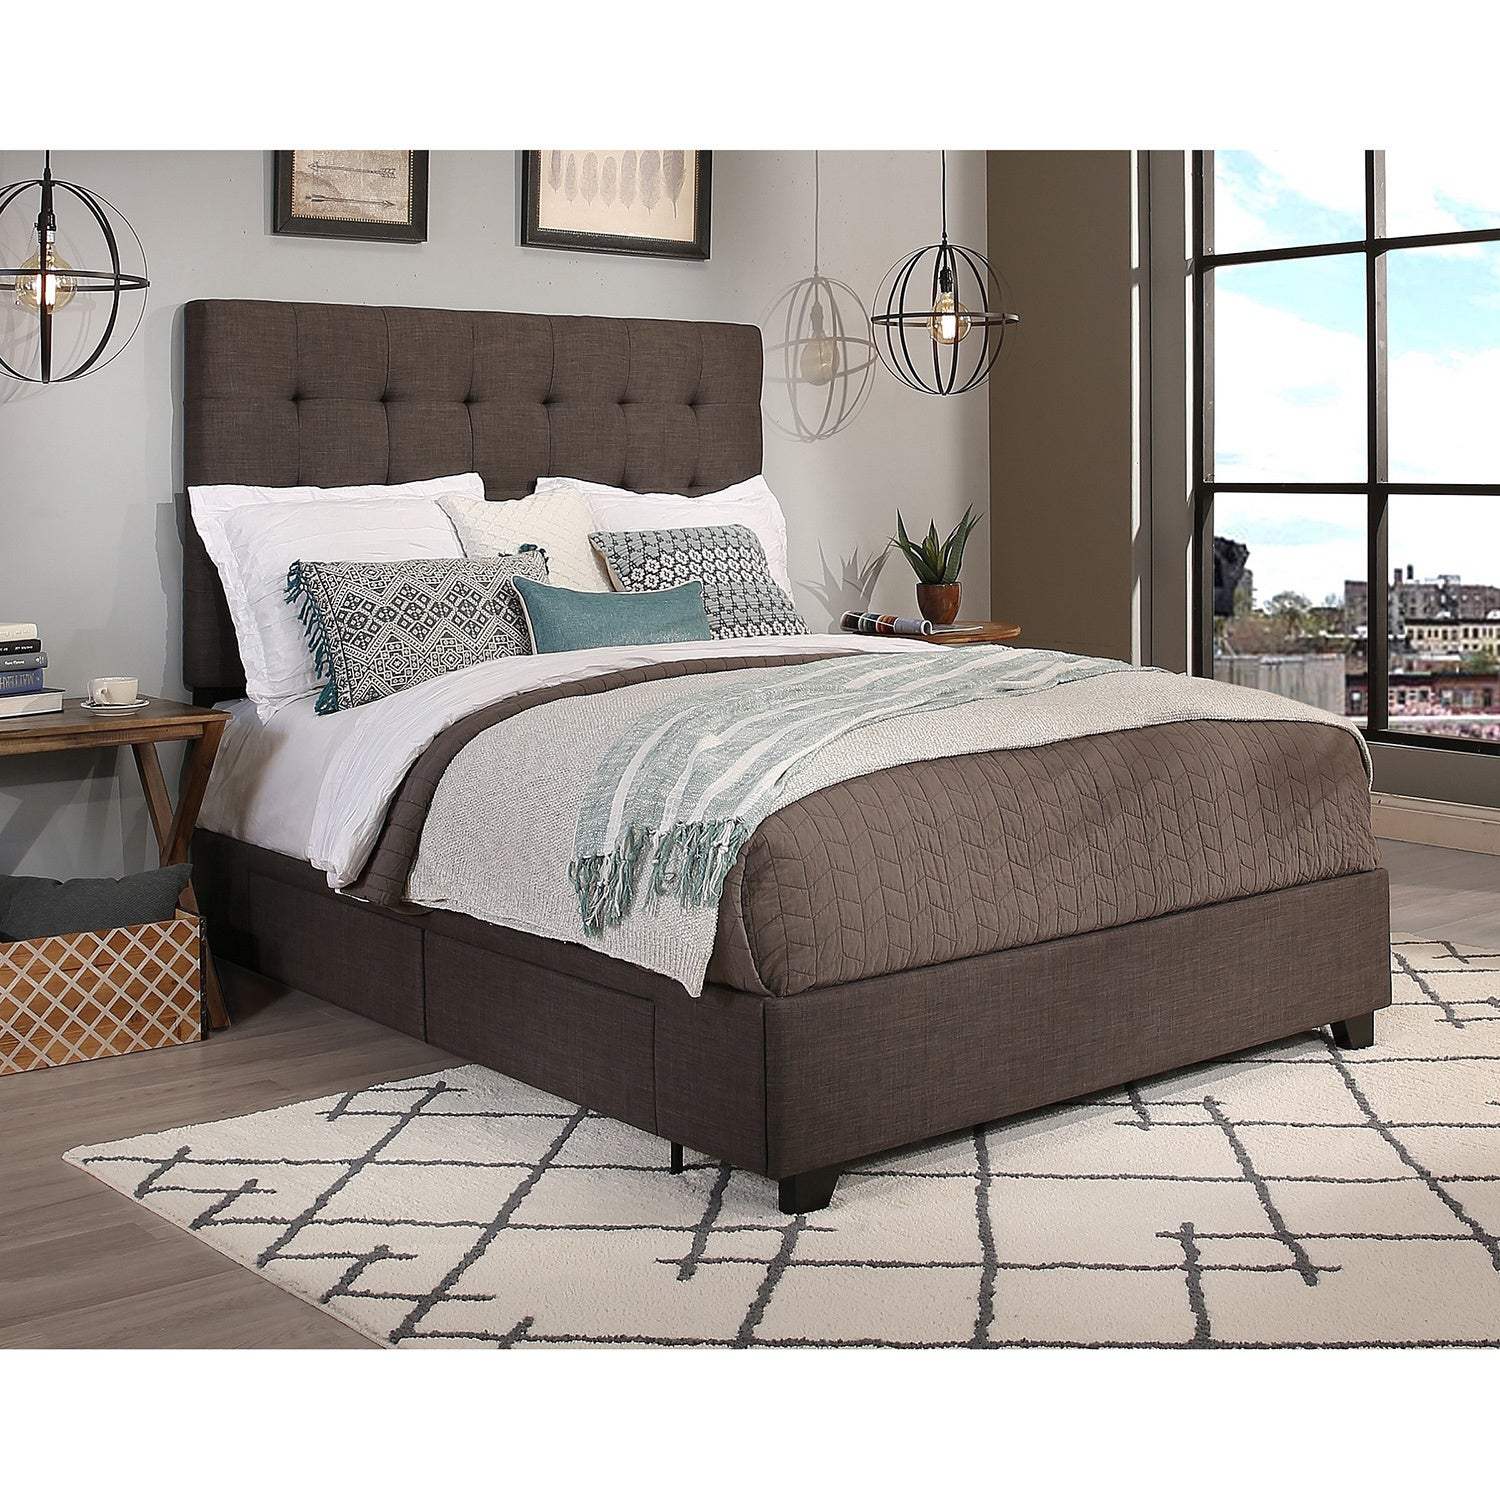 beautiful furniture get box ideas can king tufted some grey you for know products barnwood n did with headboards headboard